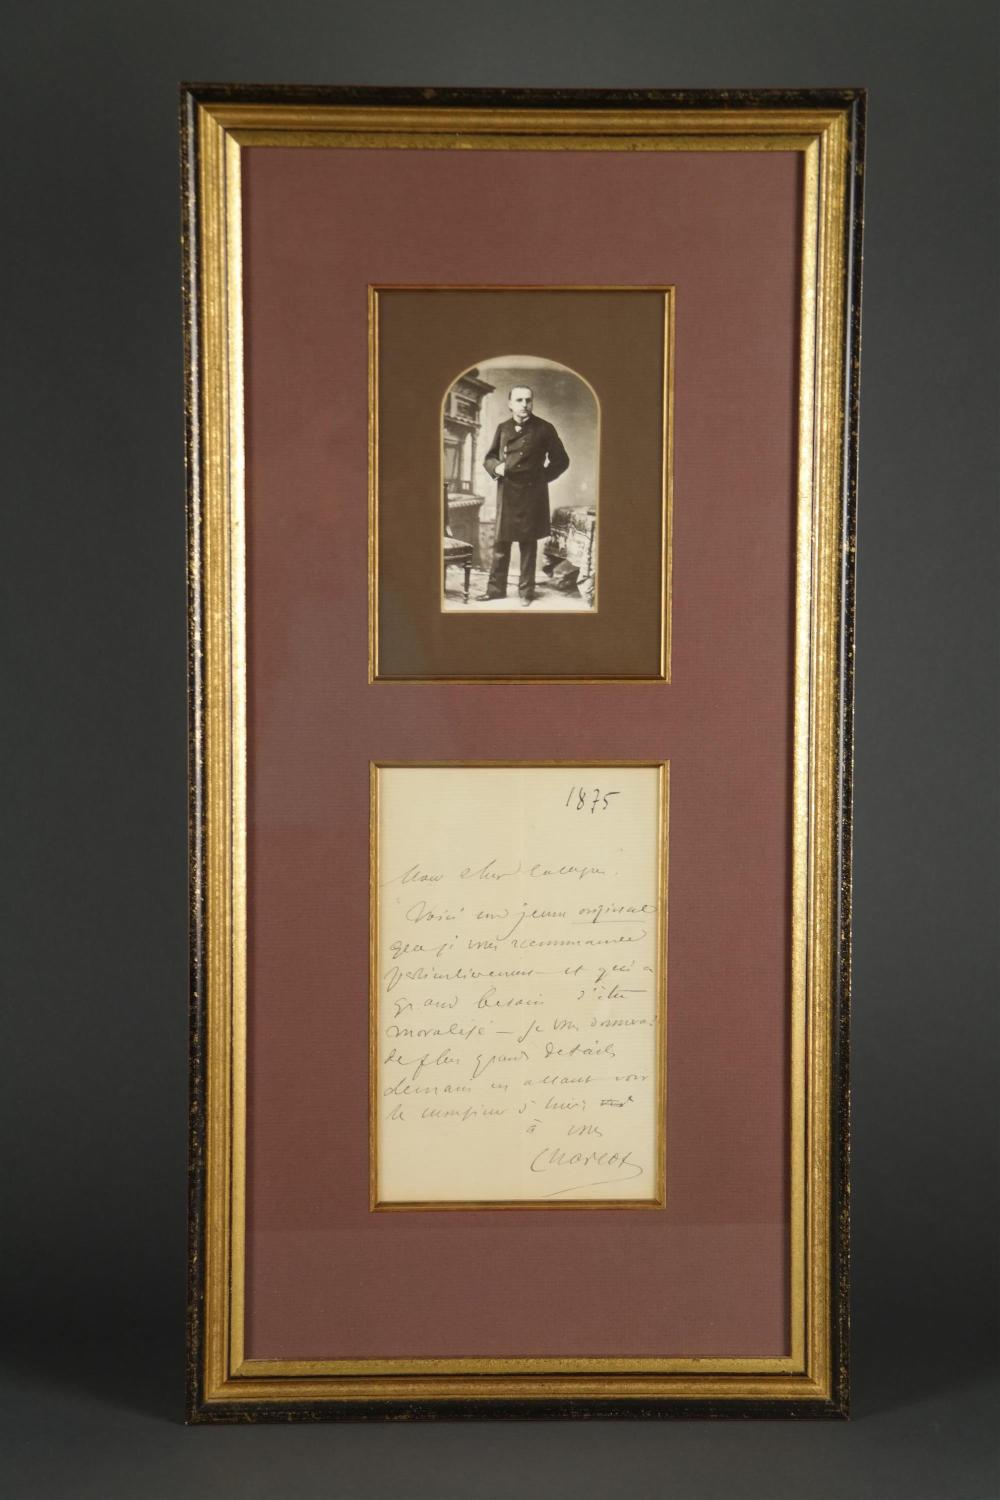 Jean Martine Charcot. Autograph Letter Signed.